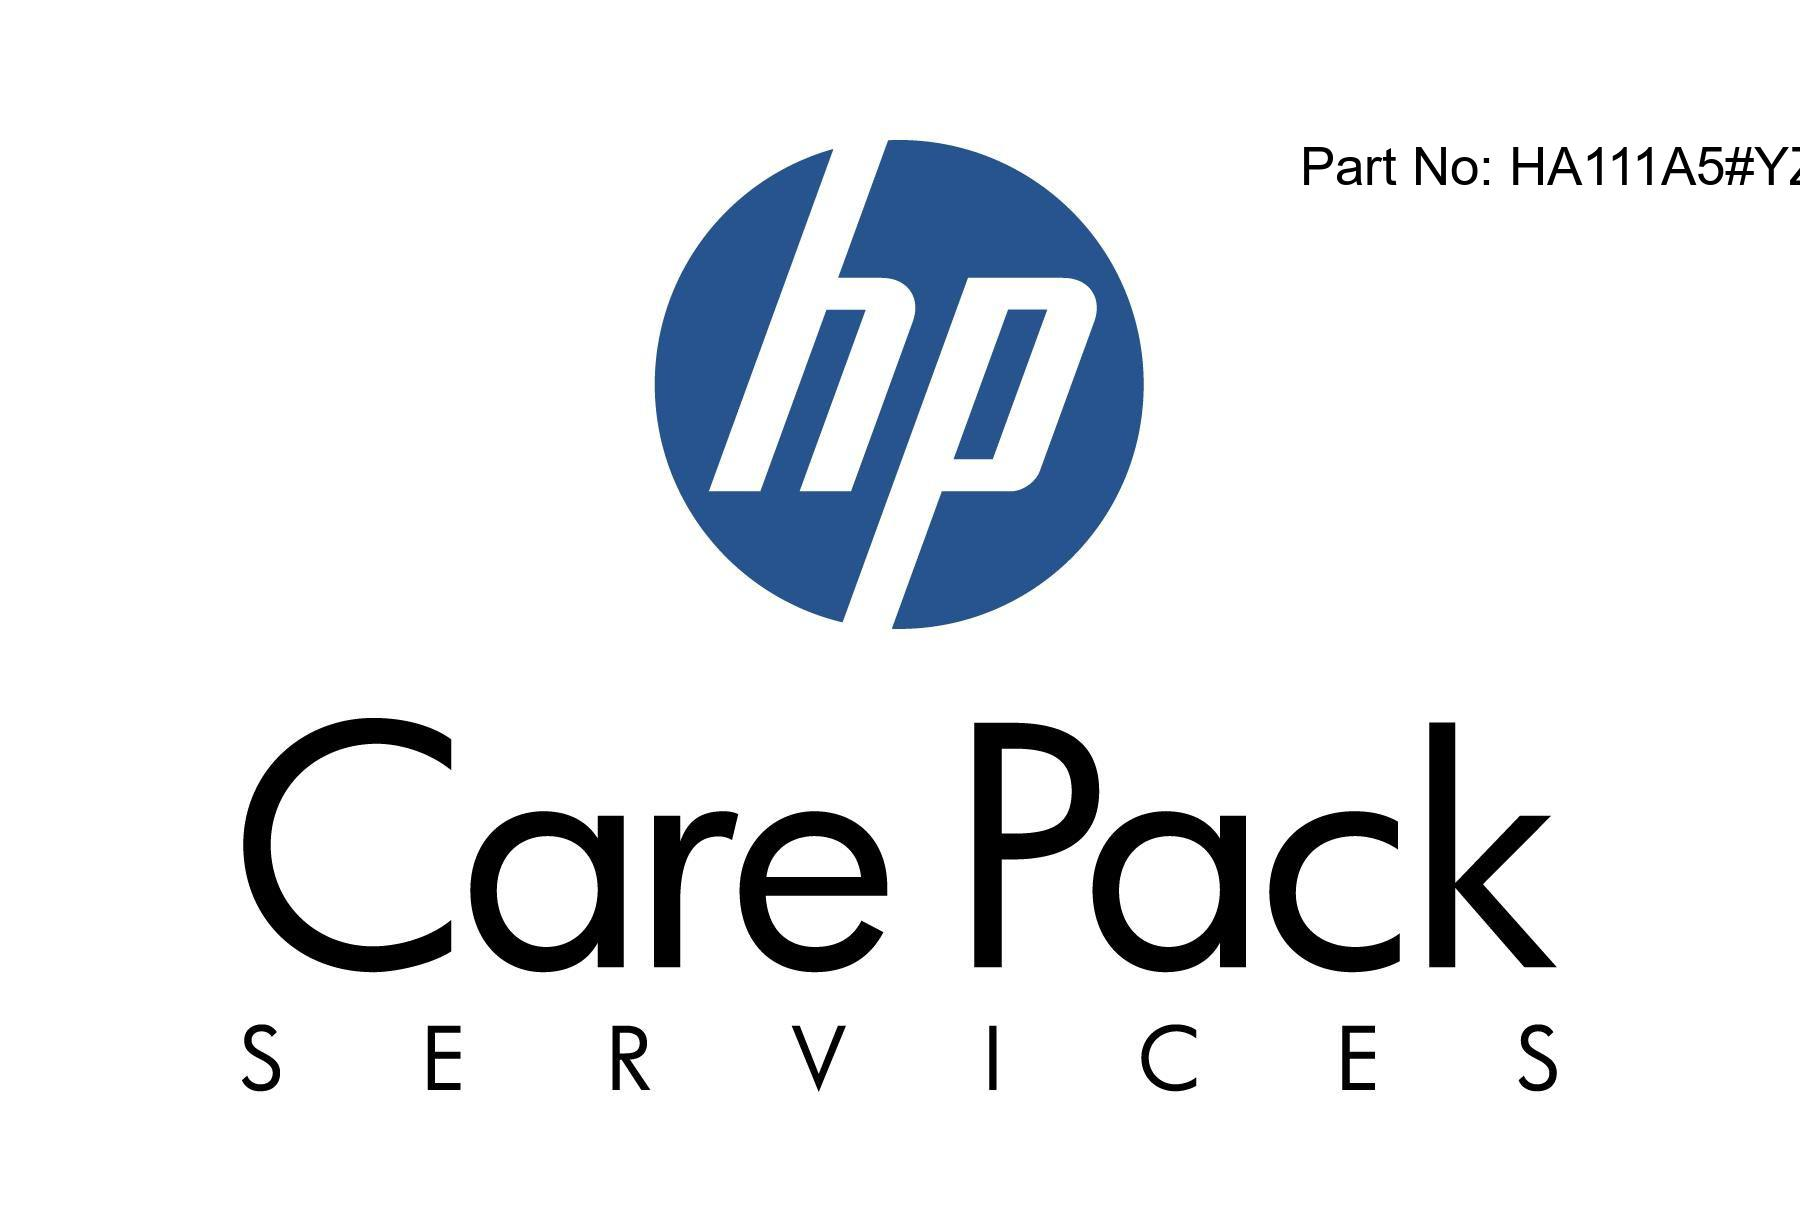 Proactive 24 - Technical support - for HPE 3PAR 8200 Dynamic Optimization - 8 drives - phone consulting - 5 years - 24x7 - response time: 2 h